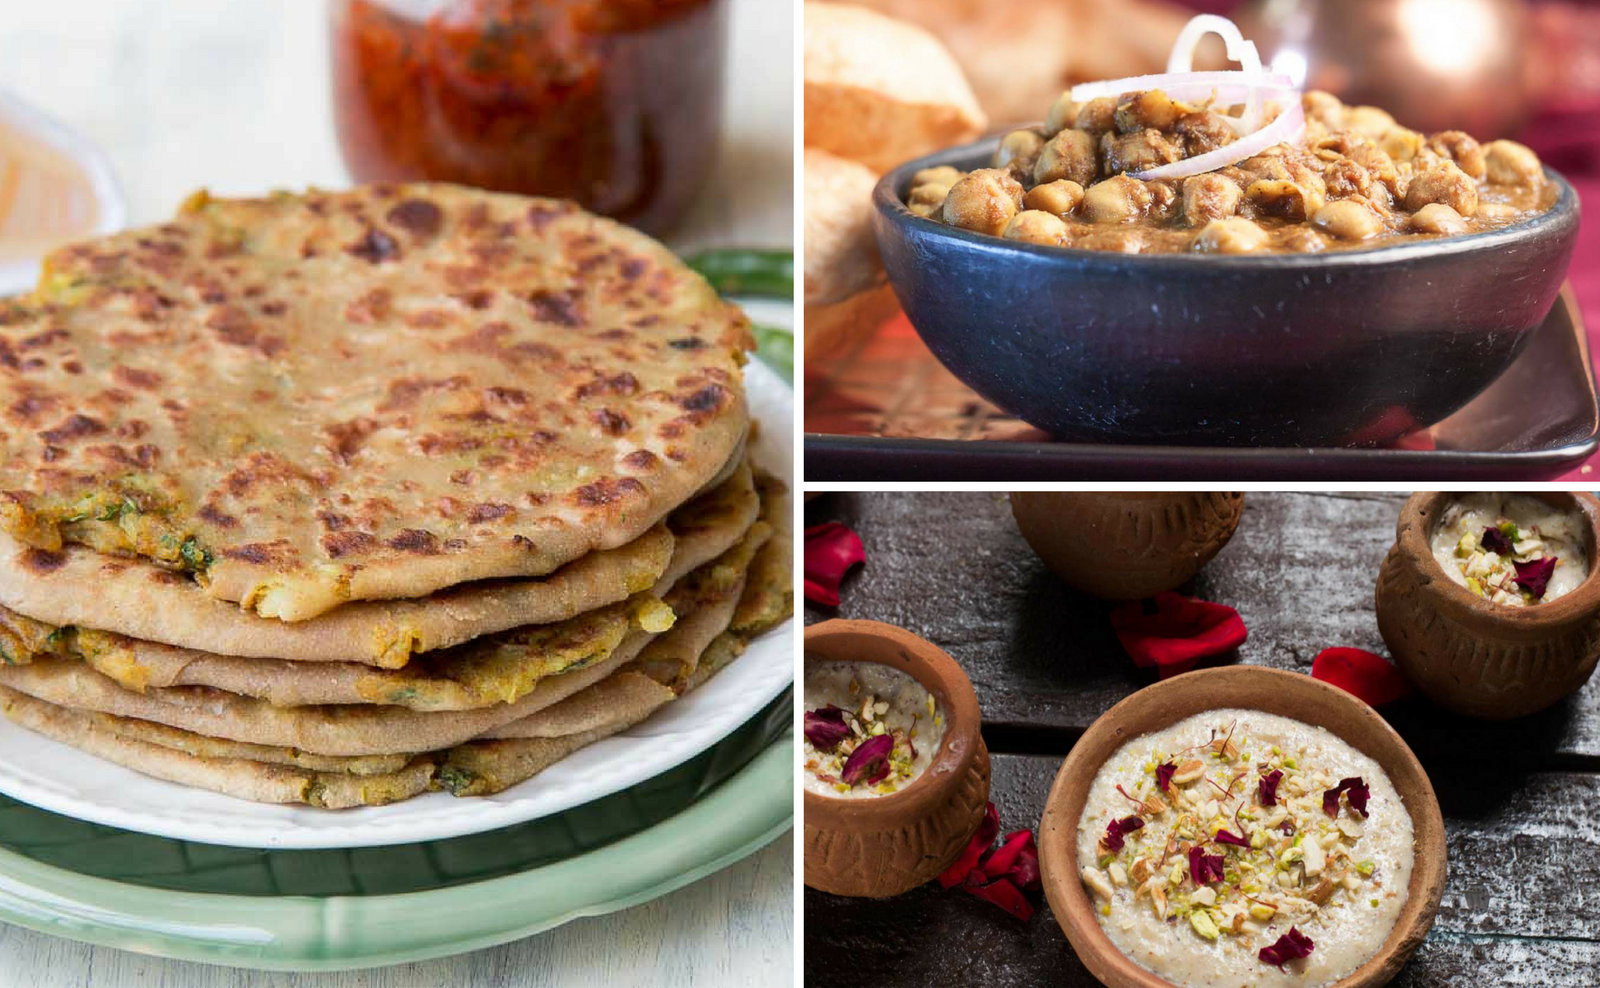 Make your sunday breakfast special with this punjabi menu by make your sunday breakfast special with this punjabi menu forumfinder Images